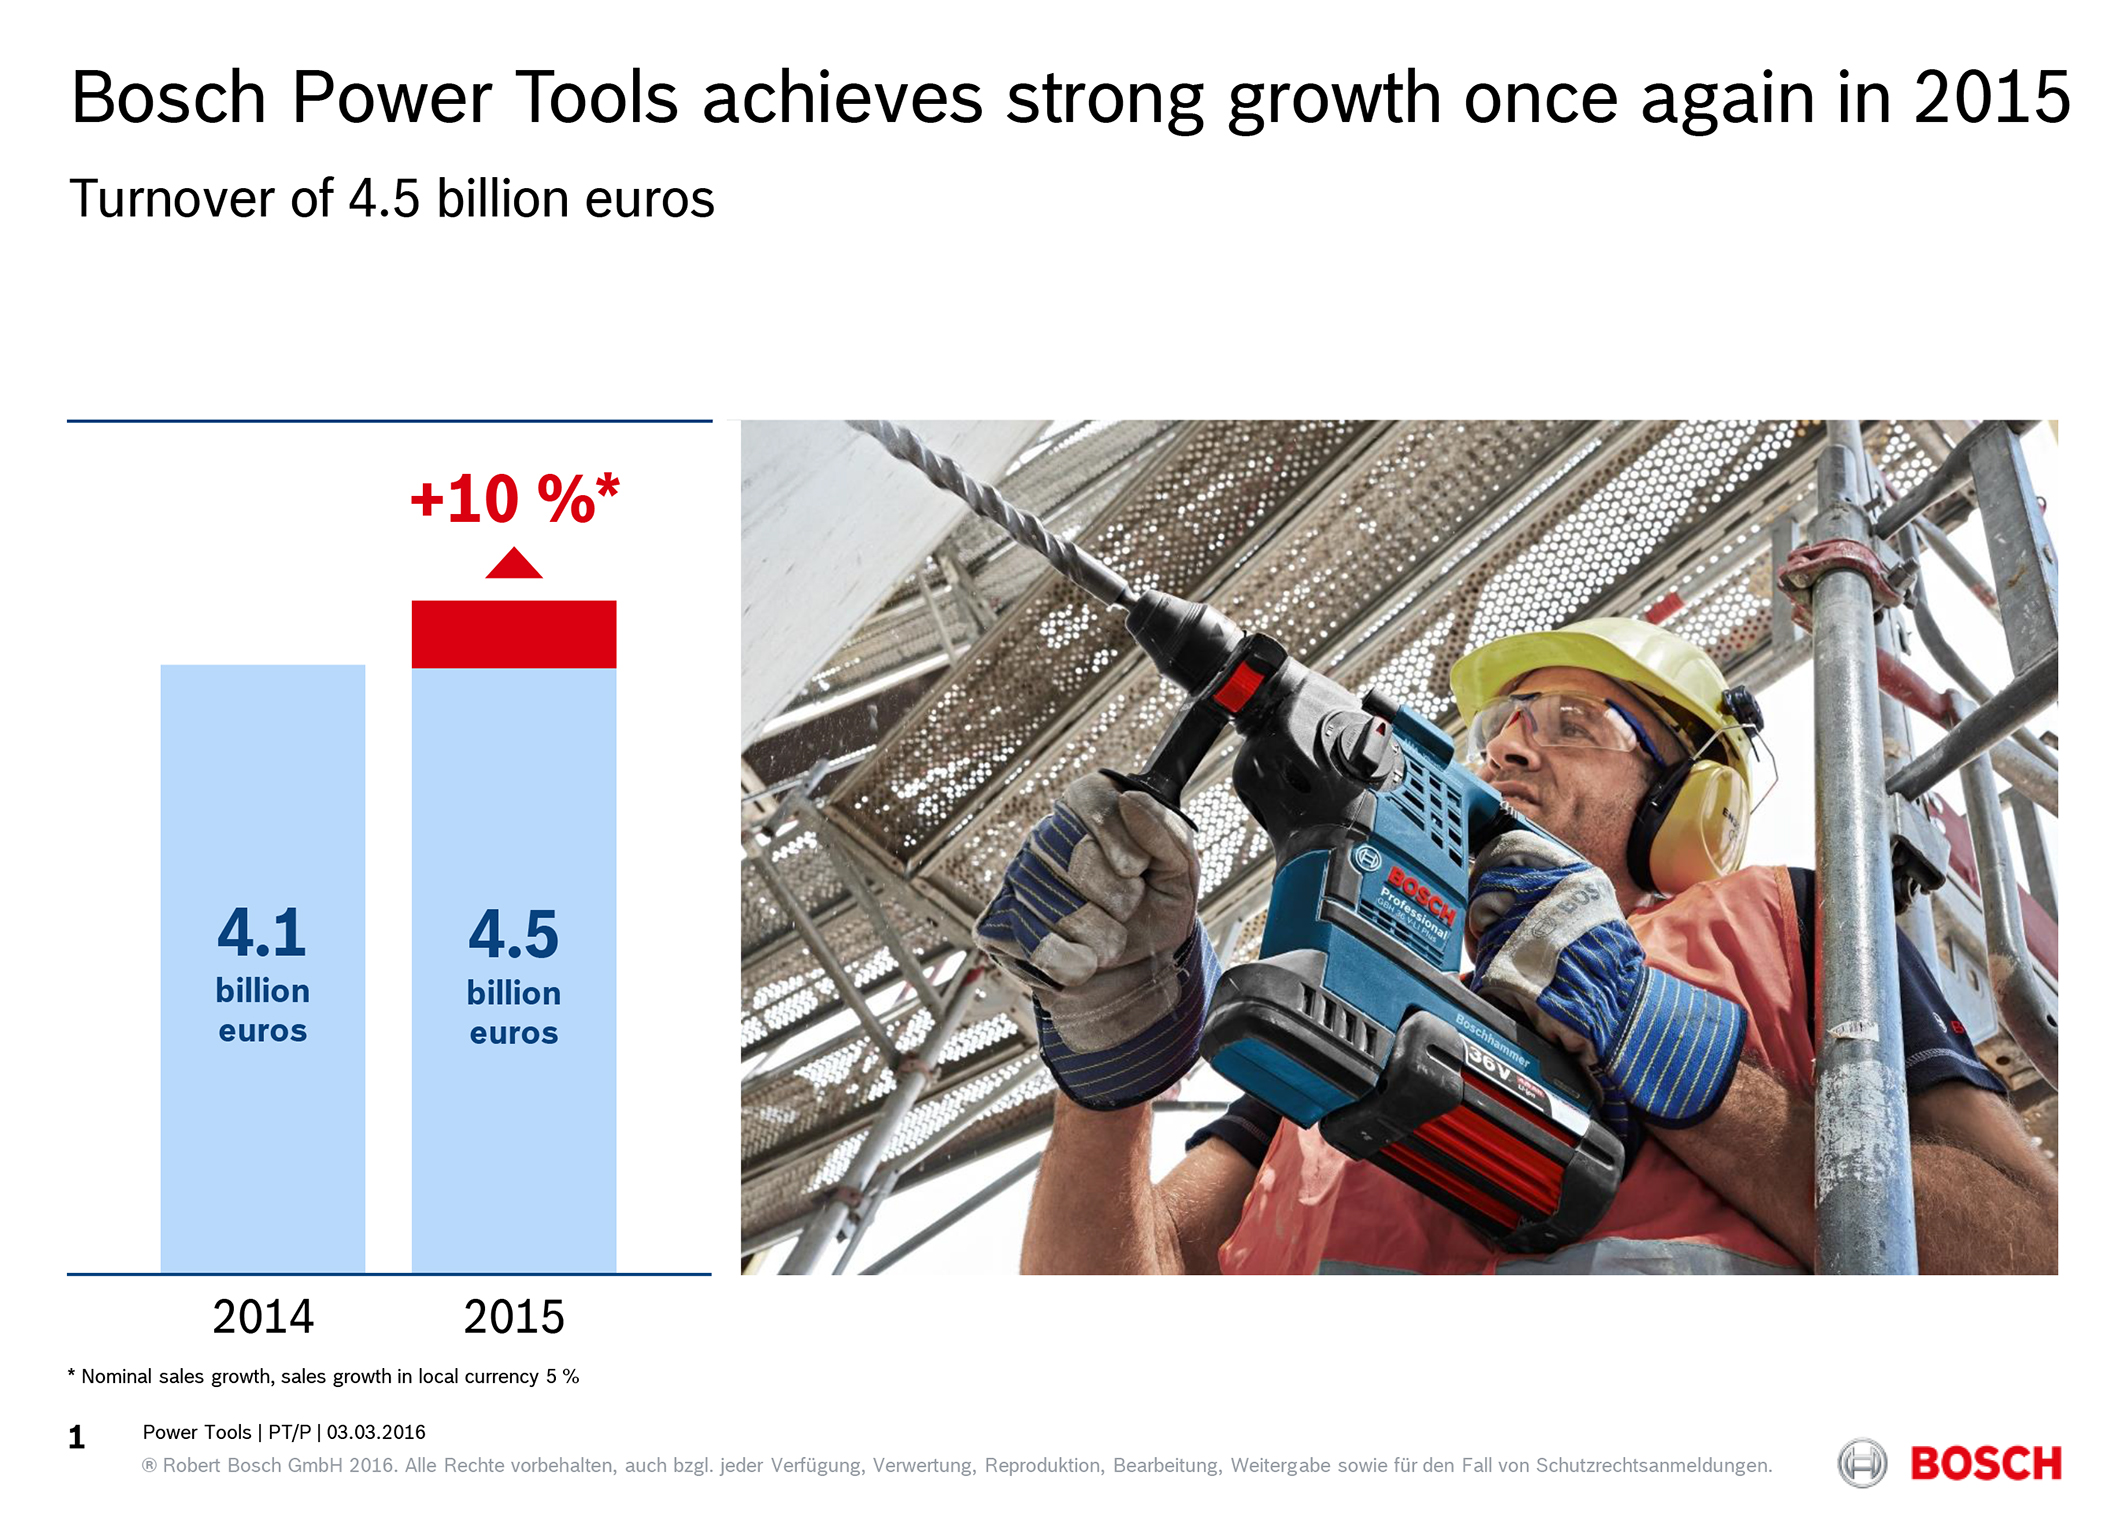 Bosch Power Tools Division